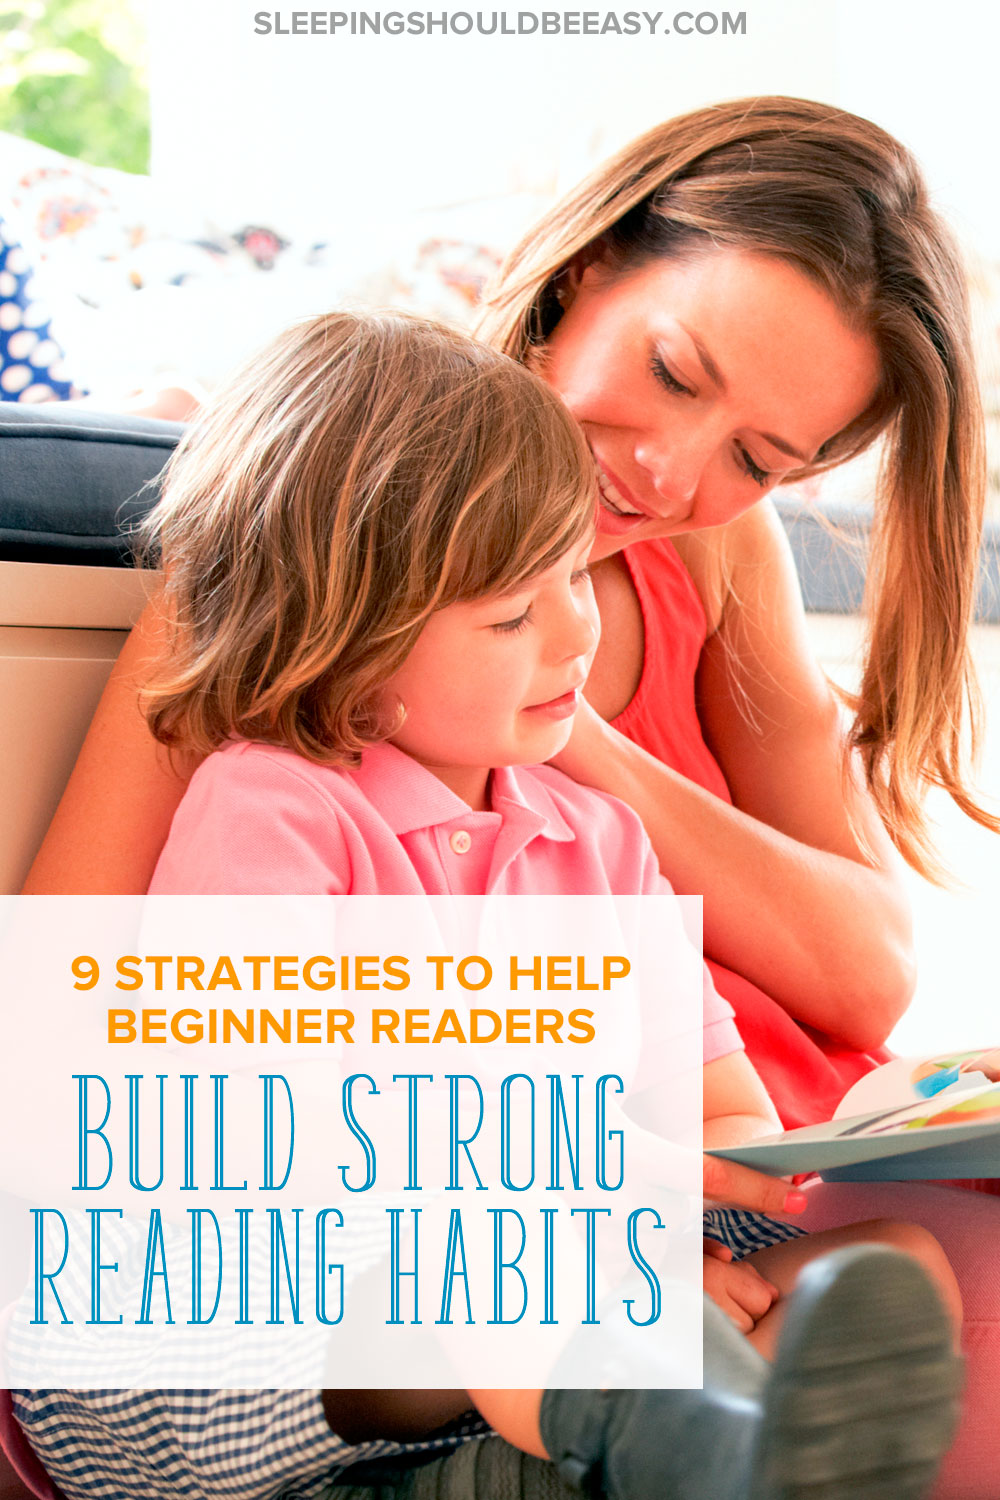 Want to encourage a love of reading in your child? Discover the 9 strategies that will help beginner readers build strong reading habits.